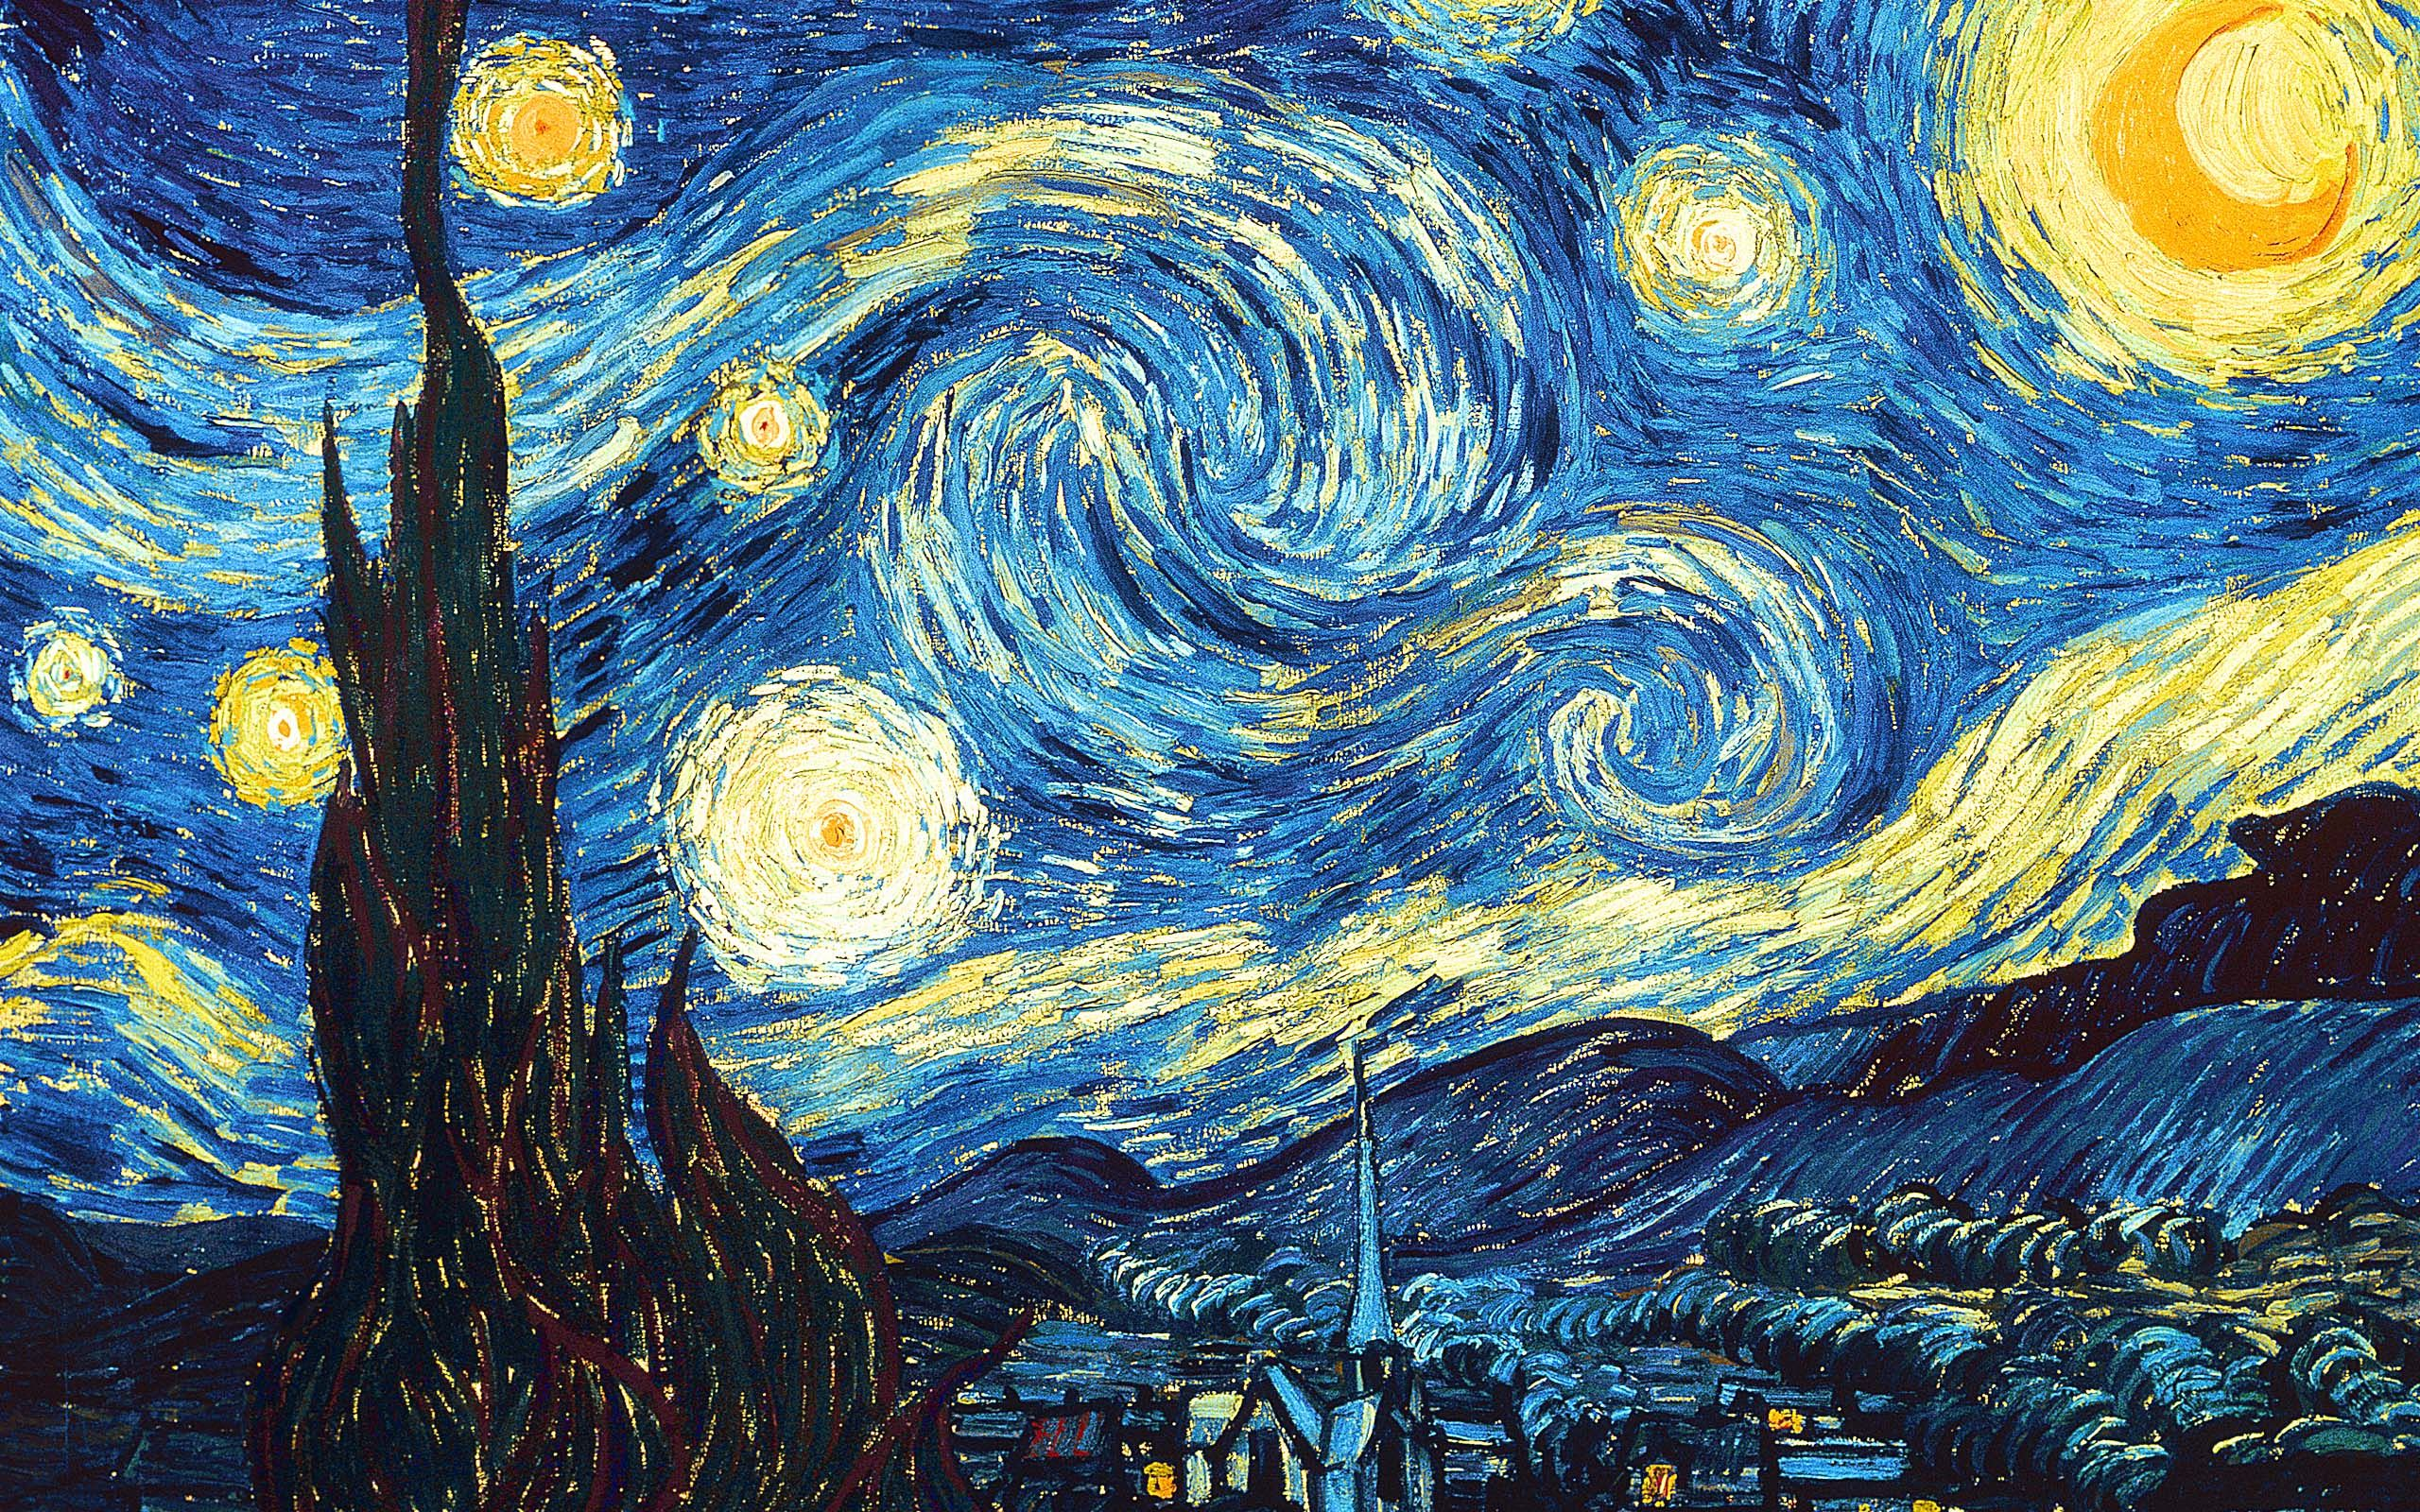 Vincent Van Goghs Starry Night Is One Of The Most Famous Pieces Of Art Today But What Is The True Meaning Of Van Goghs Masterpiece